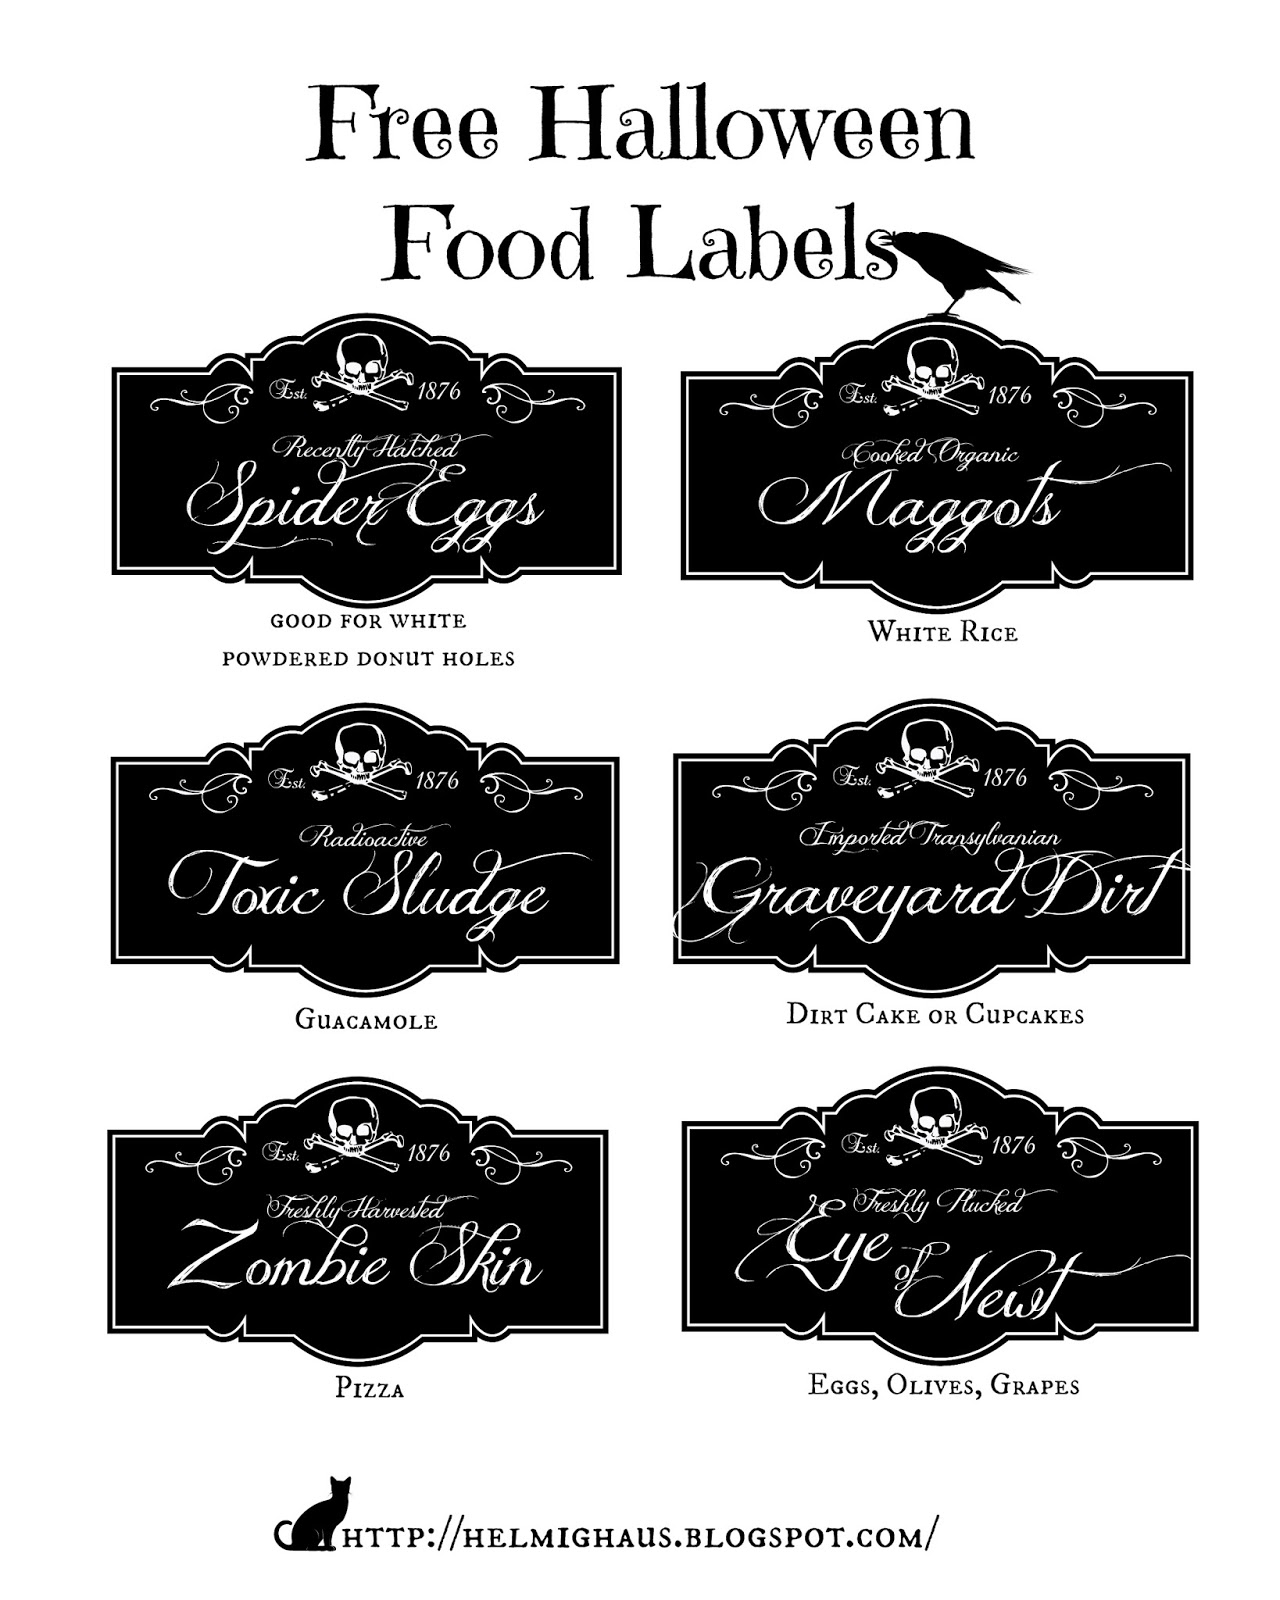 Free Halloween Food Labels via Helmig Haus   http://helmighaus.blogspot.com/